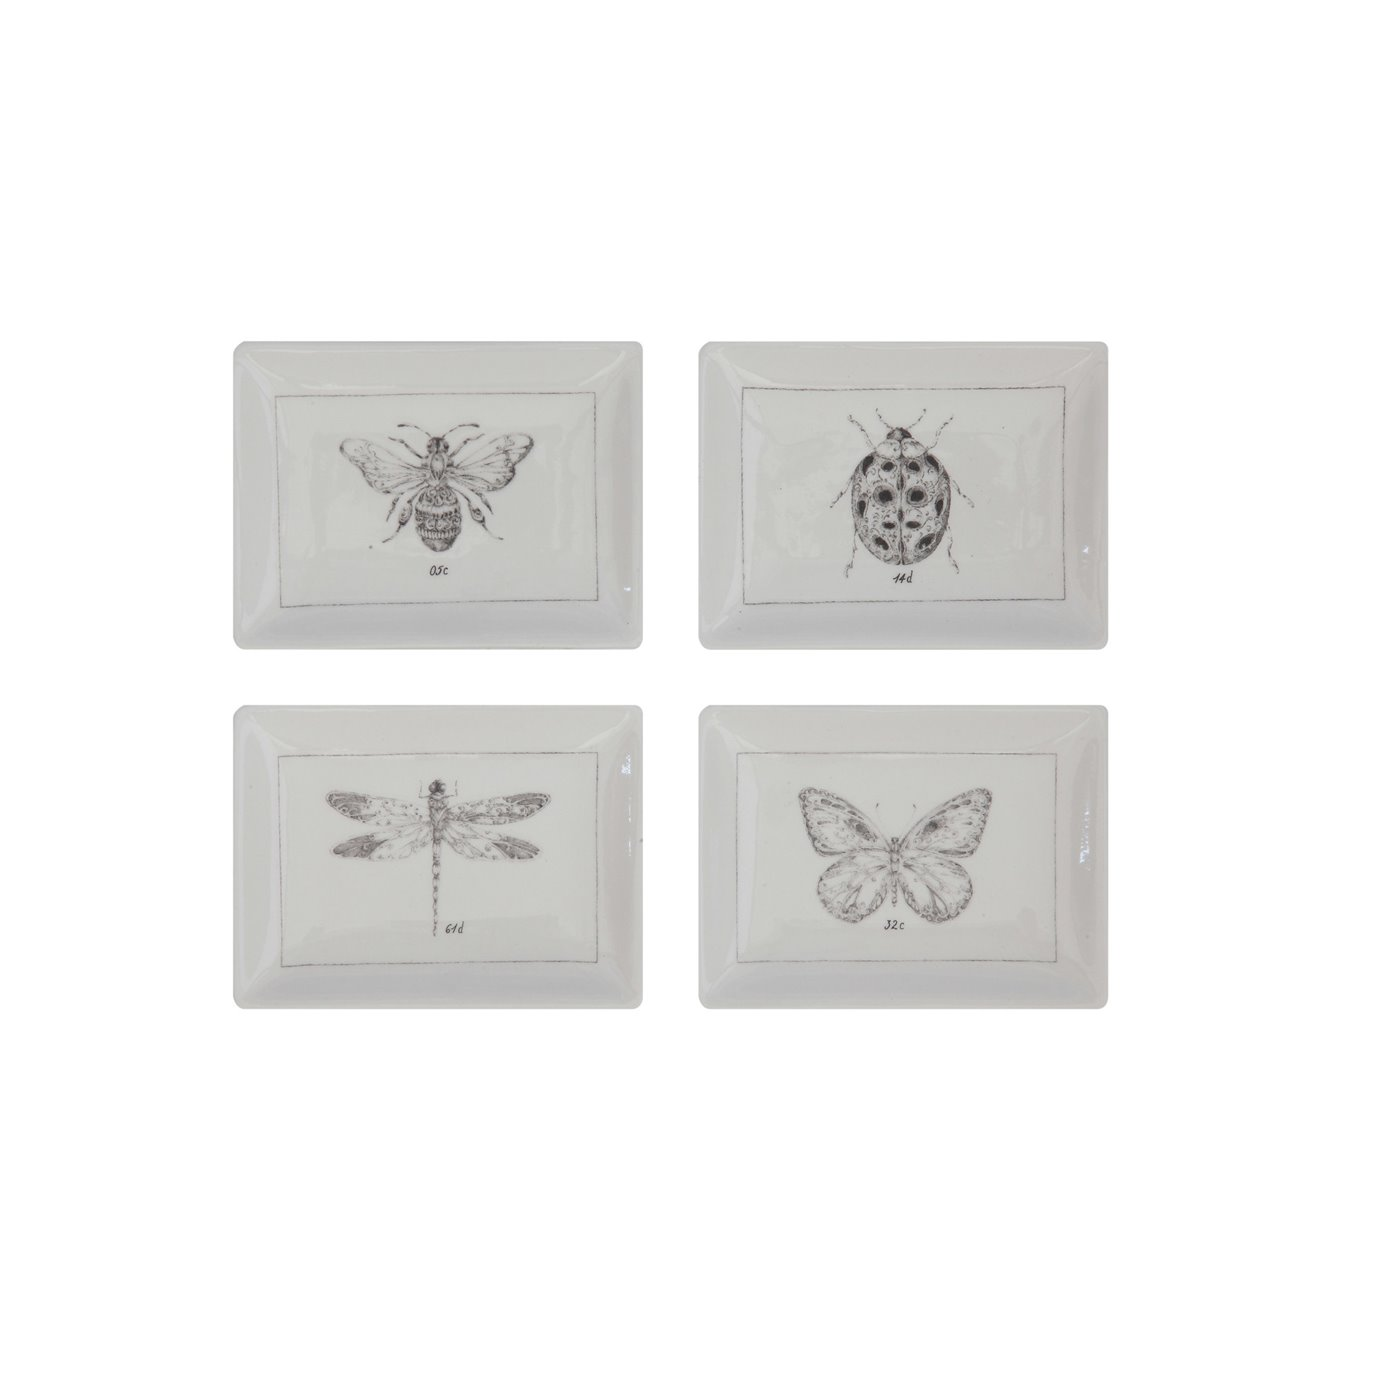 Rectangle Ceramic Dishes with Insect Images (Set of 4 Designs)